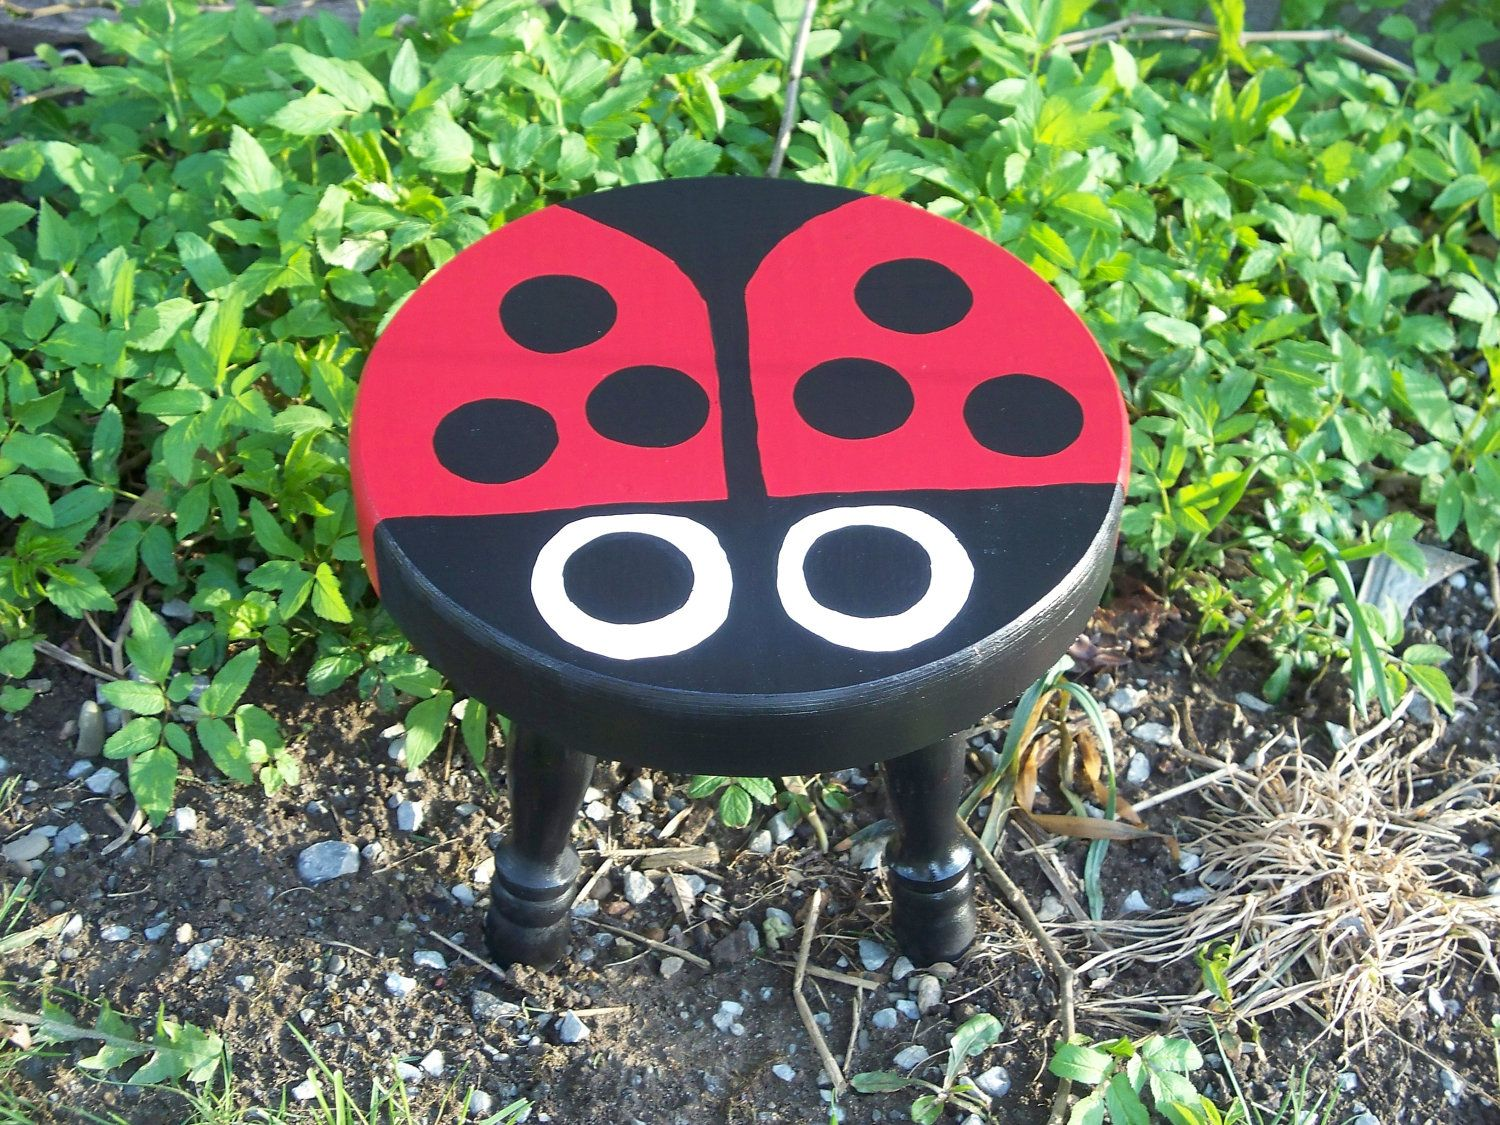 Ladybug Bench Home Decor baby or Garden by dmsmith04 on Etsy, $35.00 ...